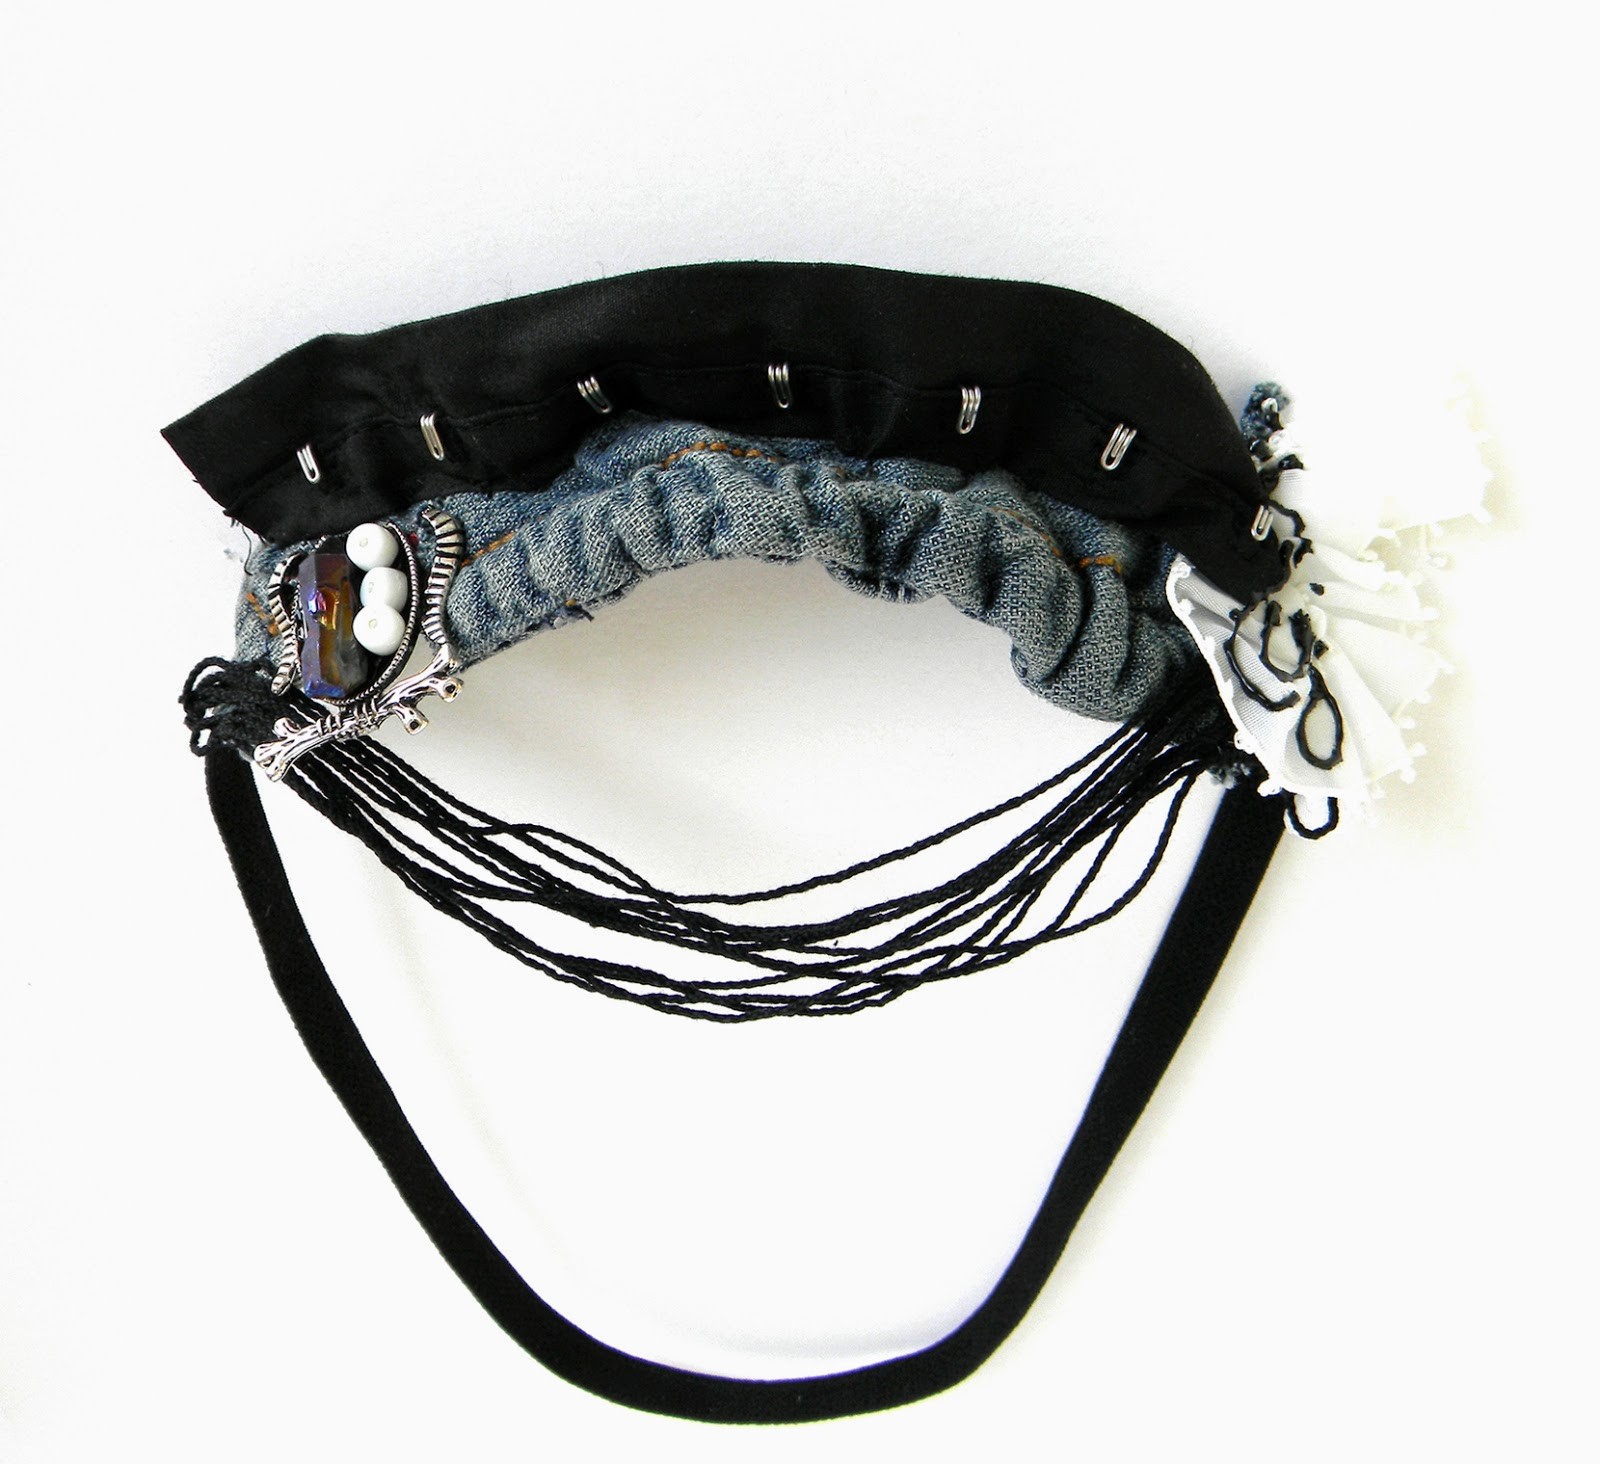 Textile Headband with cotton strings, beads and jeans applique